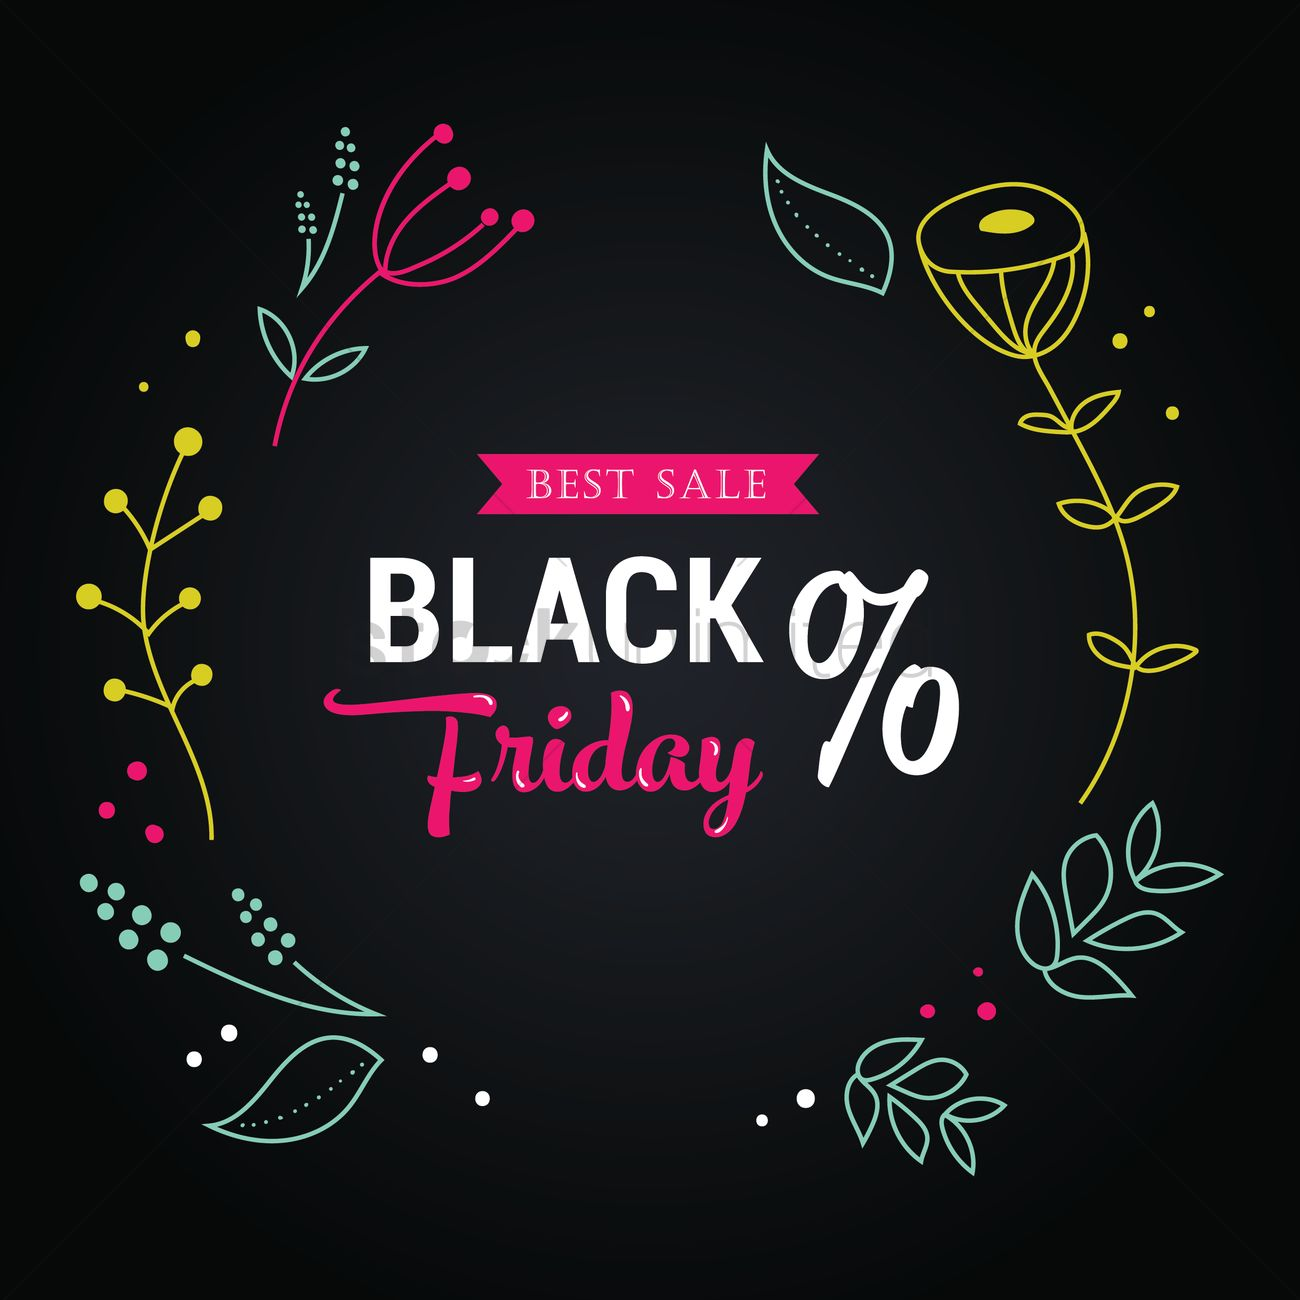 Black friday sale wallpaper Vector Image   1583256 StockUnlimited 1300x1300